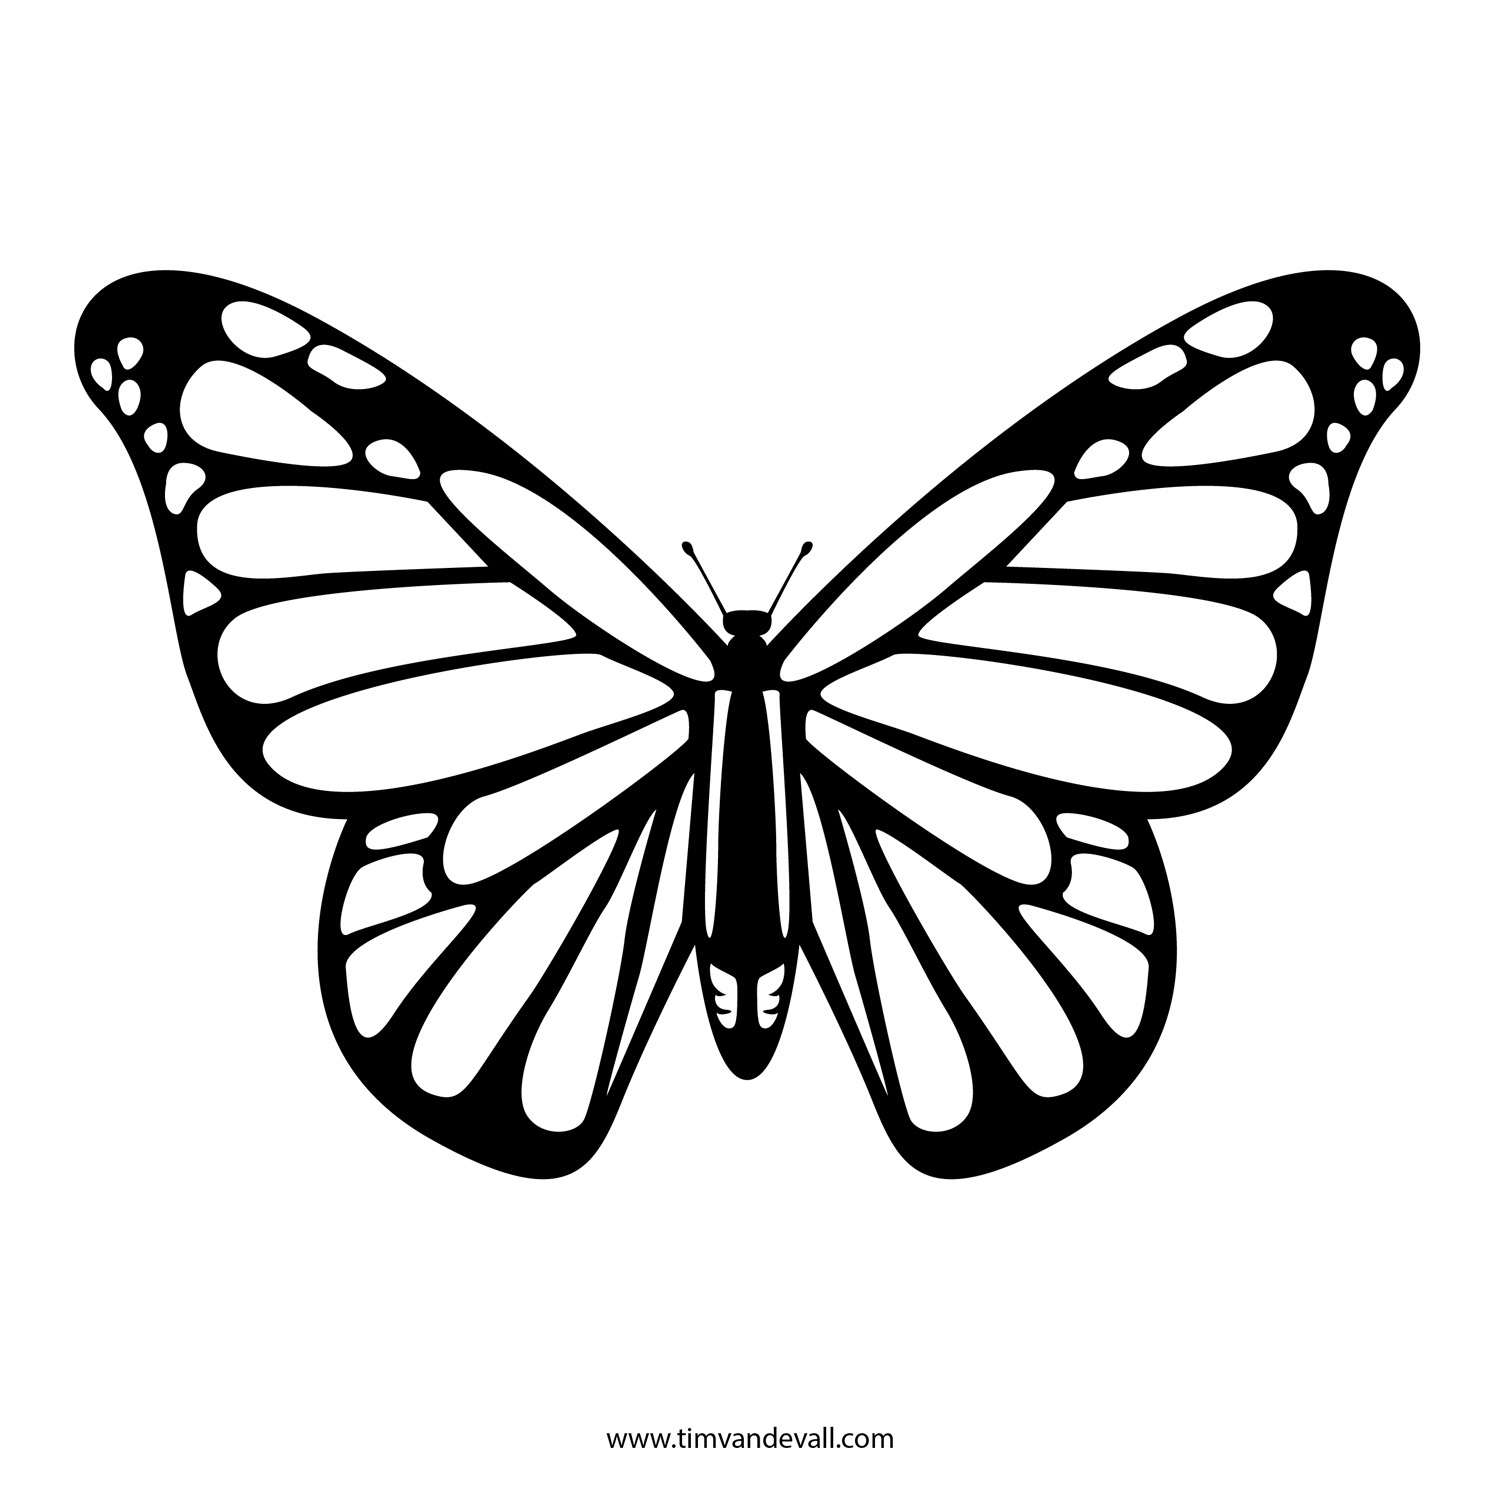 Free Printable Images Of Butterflies